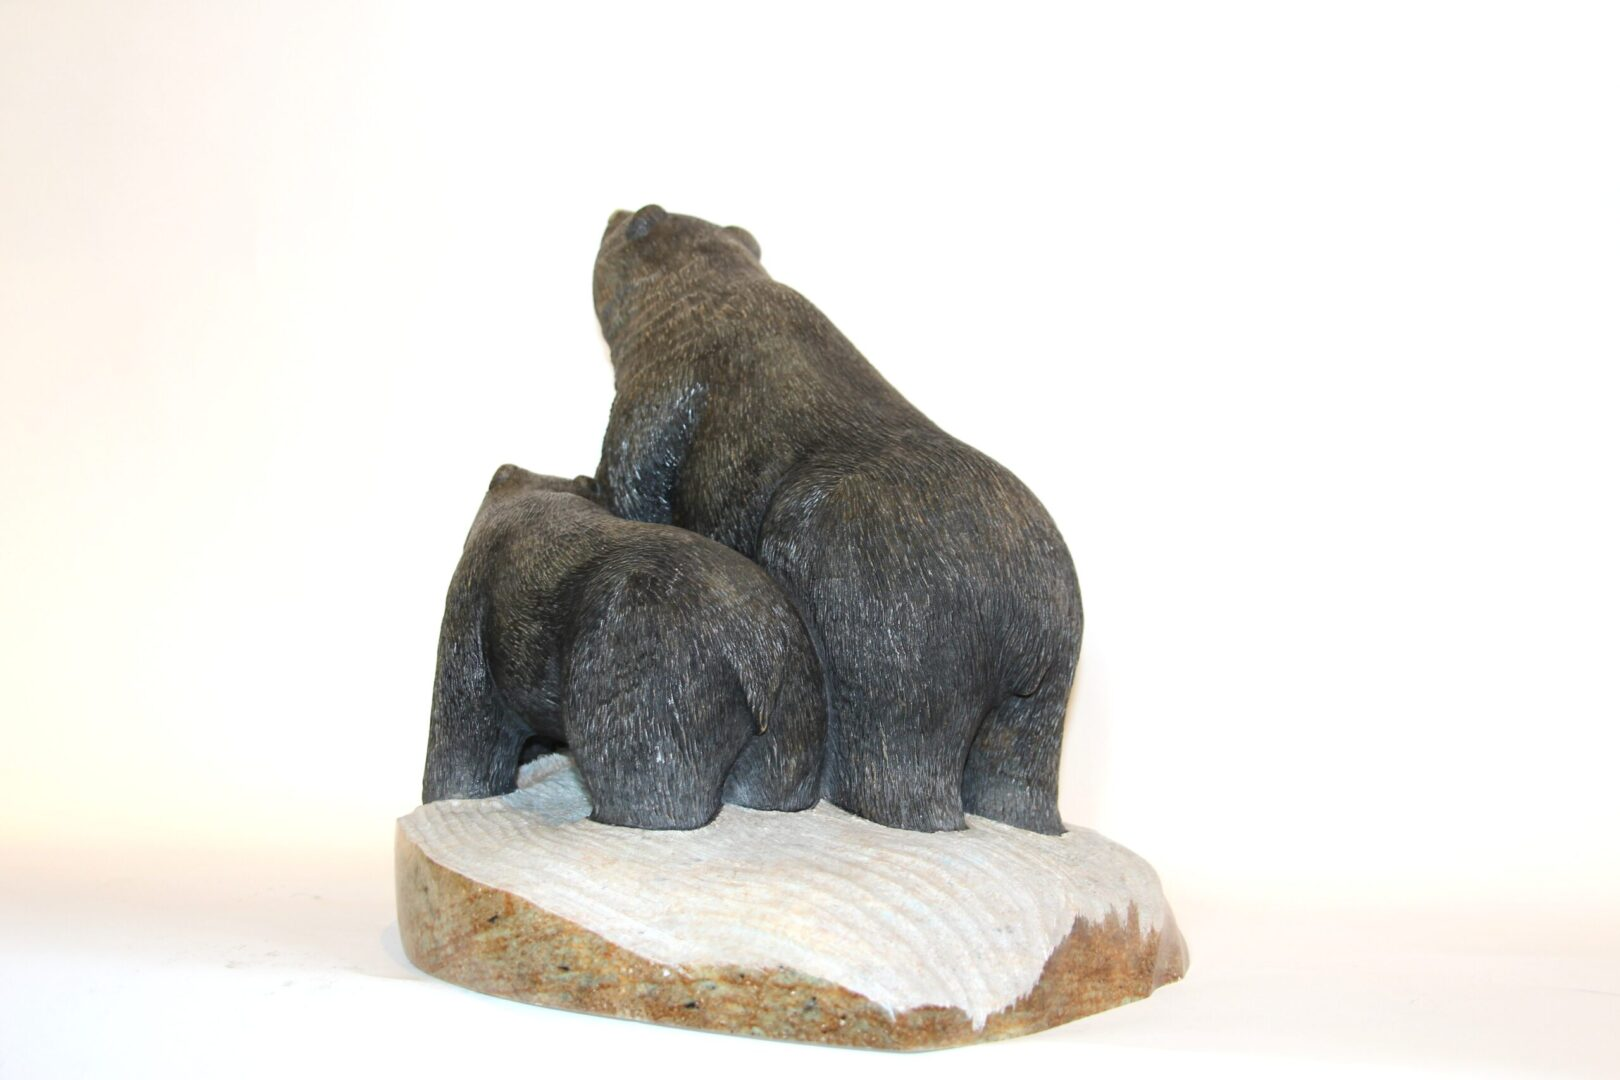 mother bear and cub Iroquois Art Sculpture in soapstone